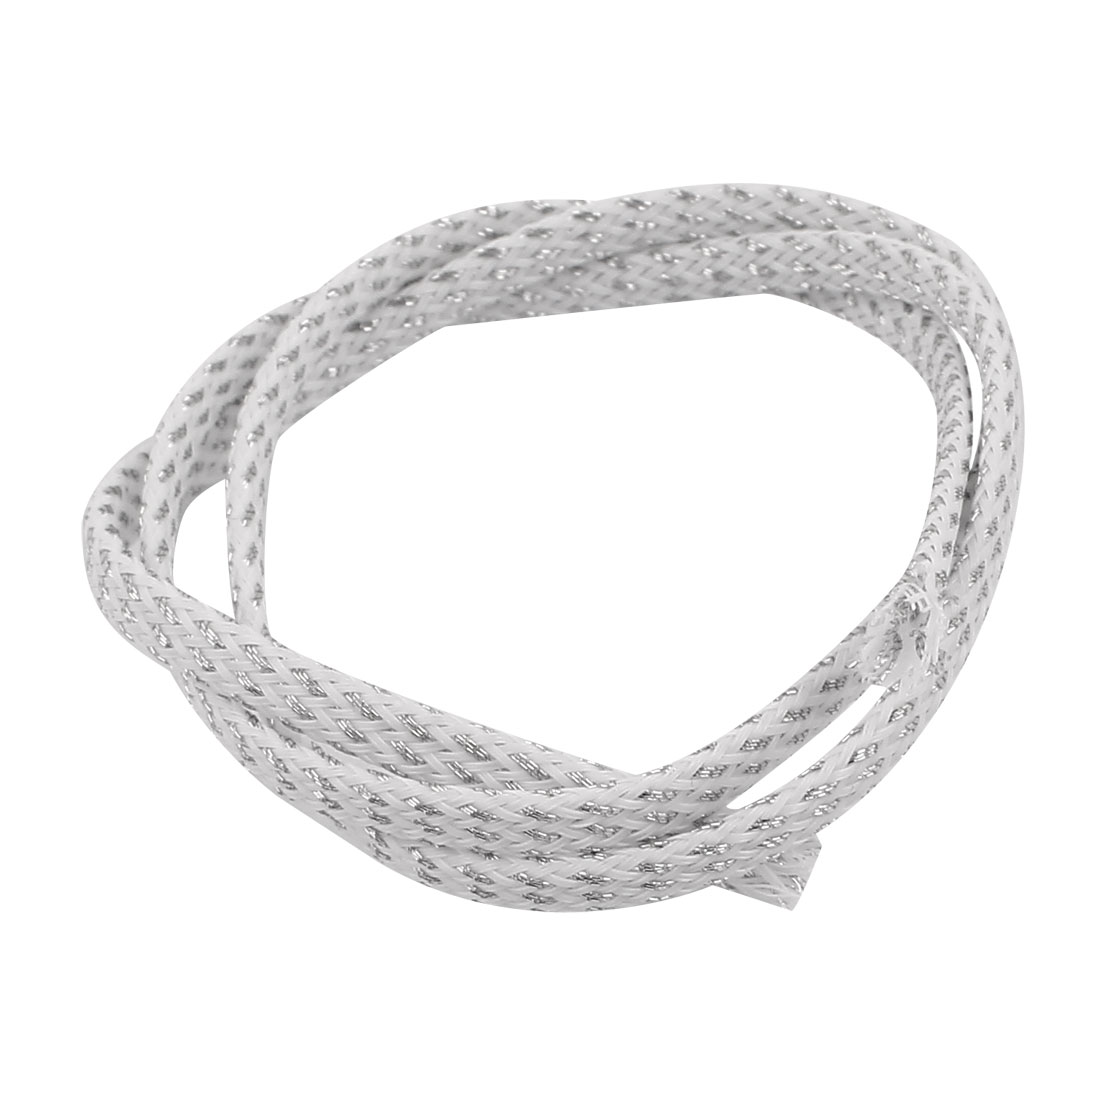 4mm Dia Tight Braided PET Expandable Sleeving Cable Wrap Sheath Silver White 5CM Length